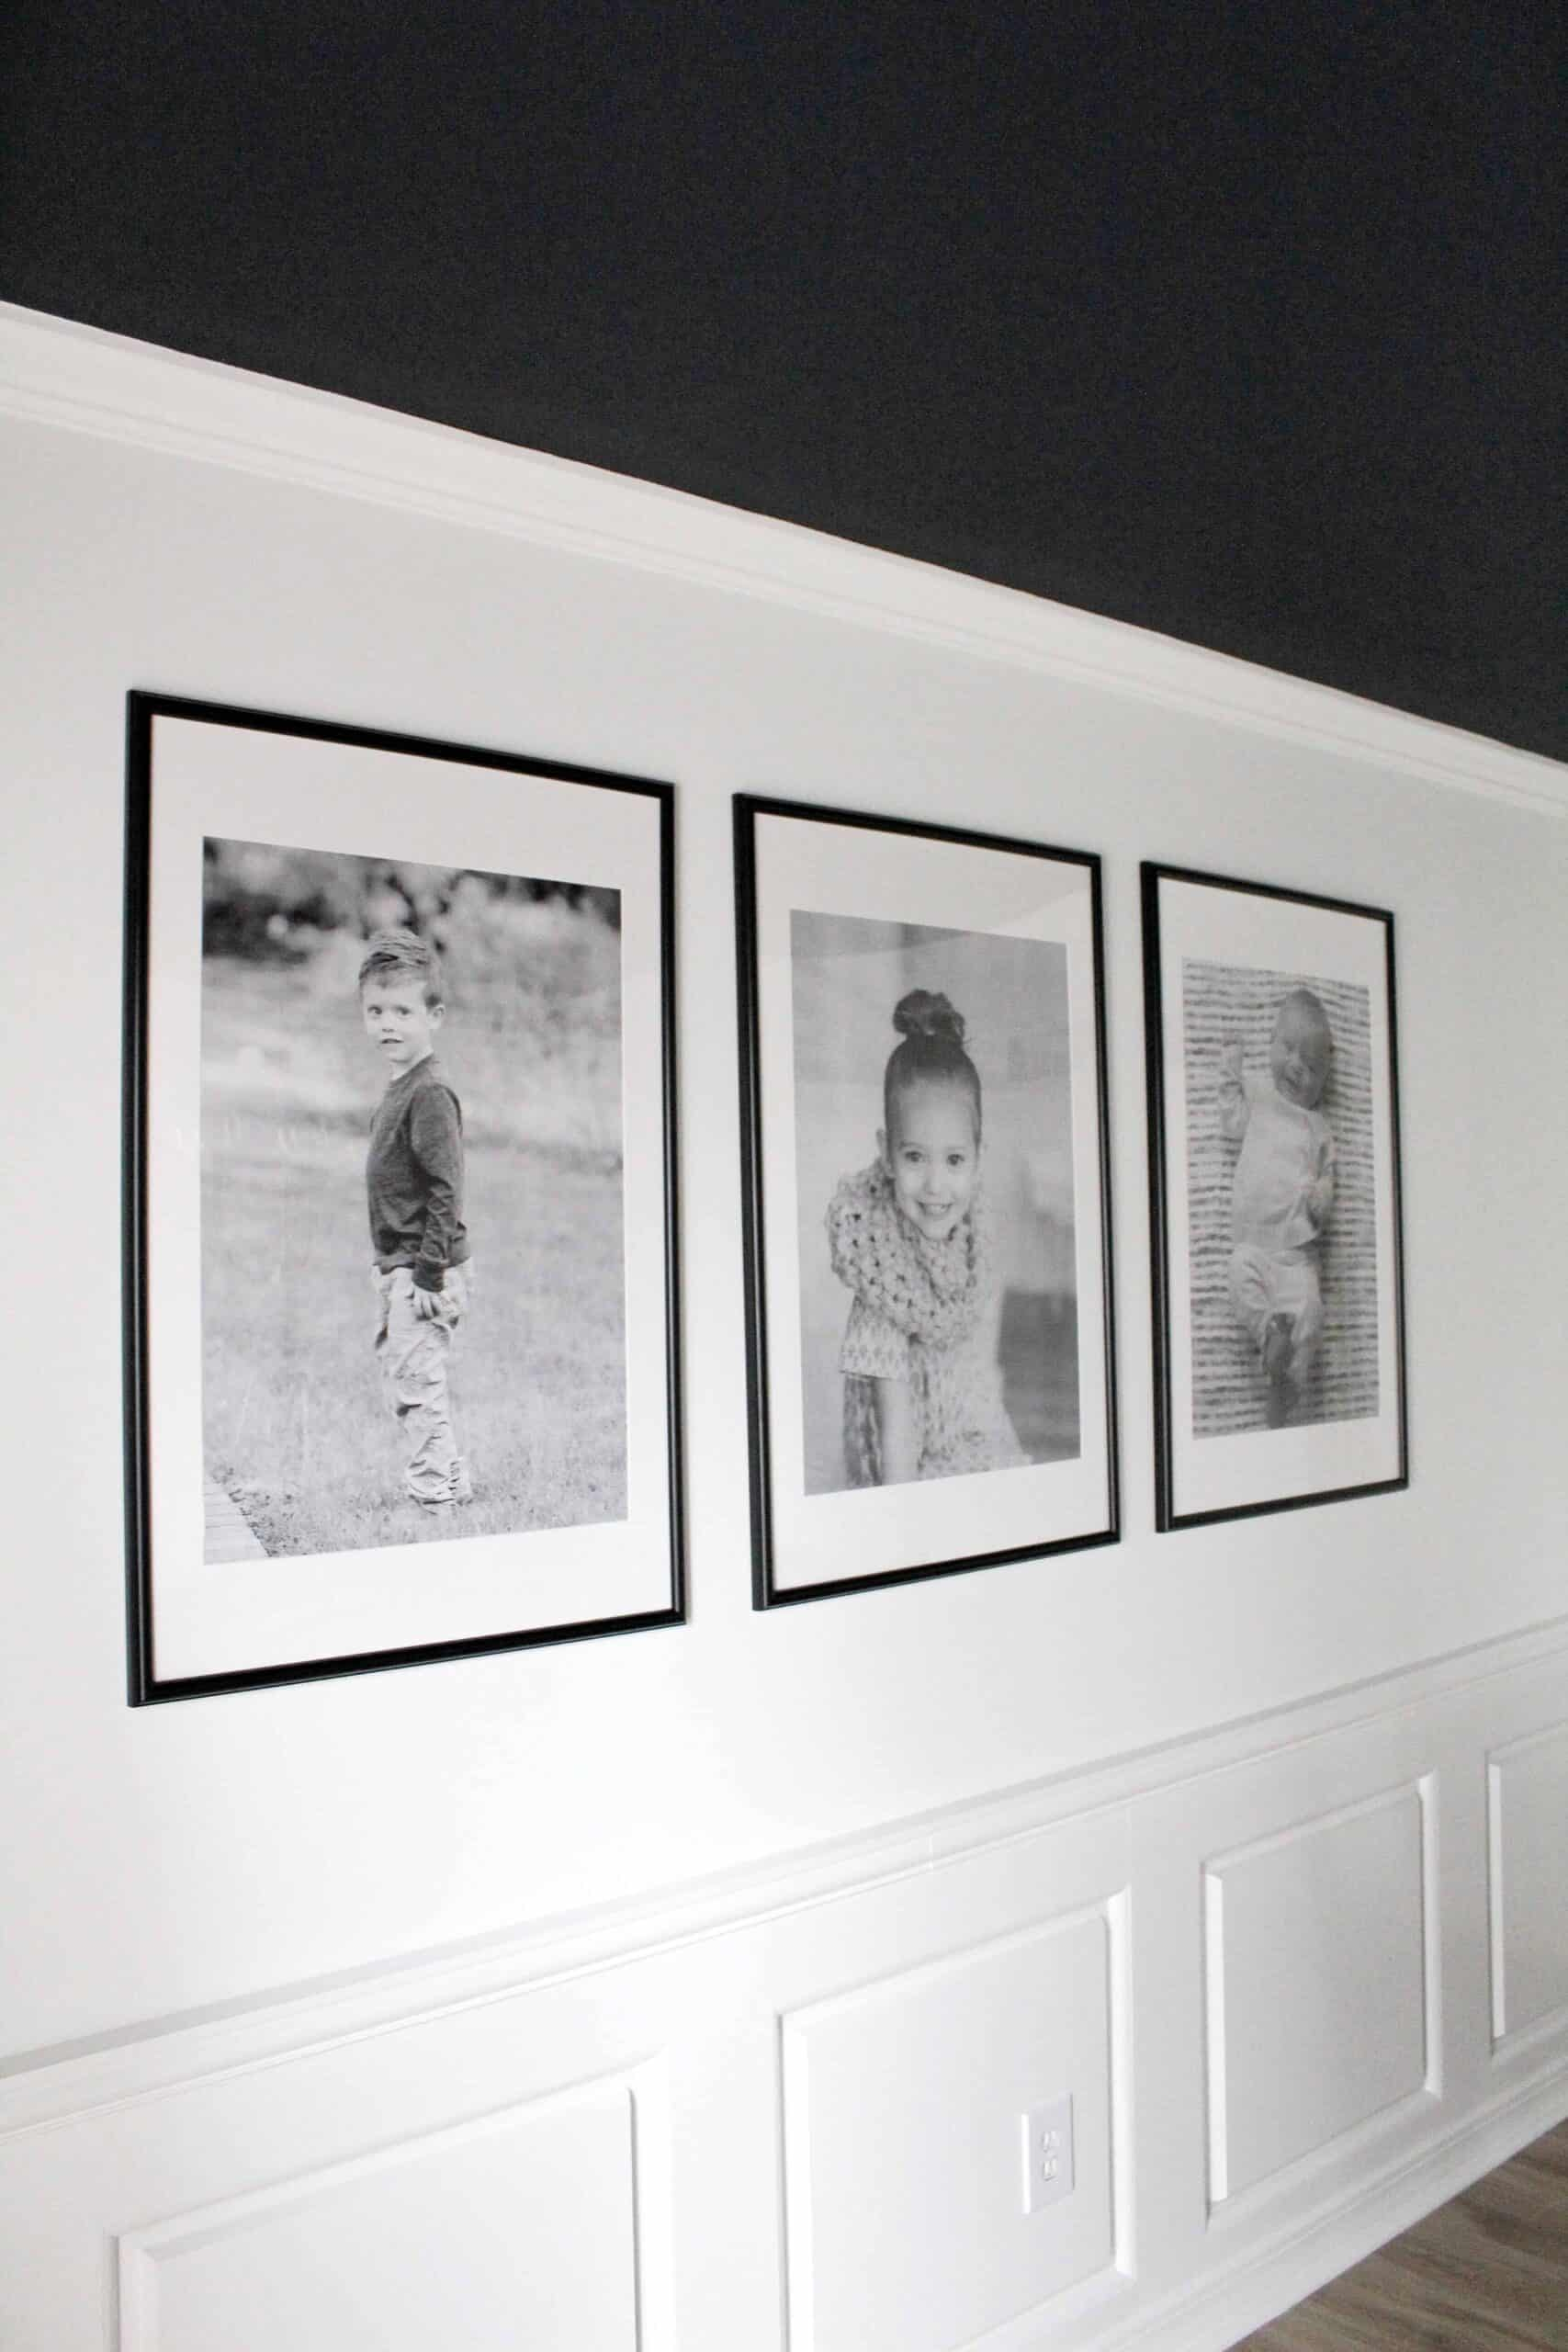 Large framed engineered prints